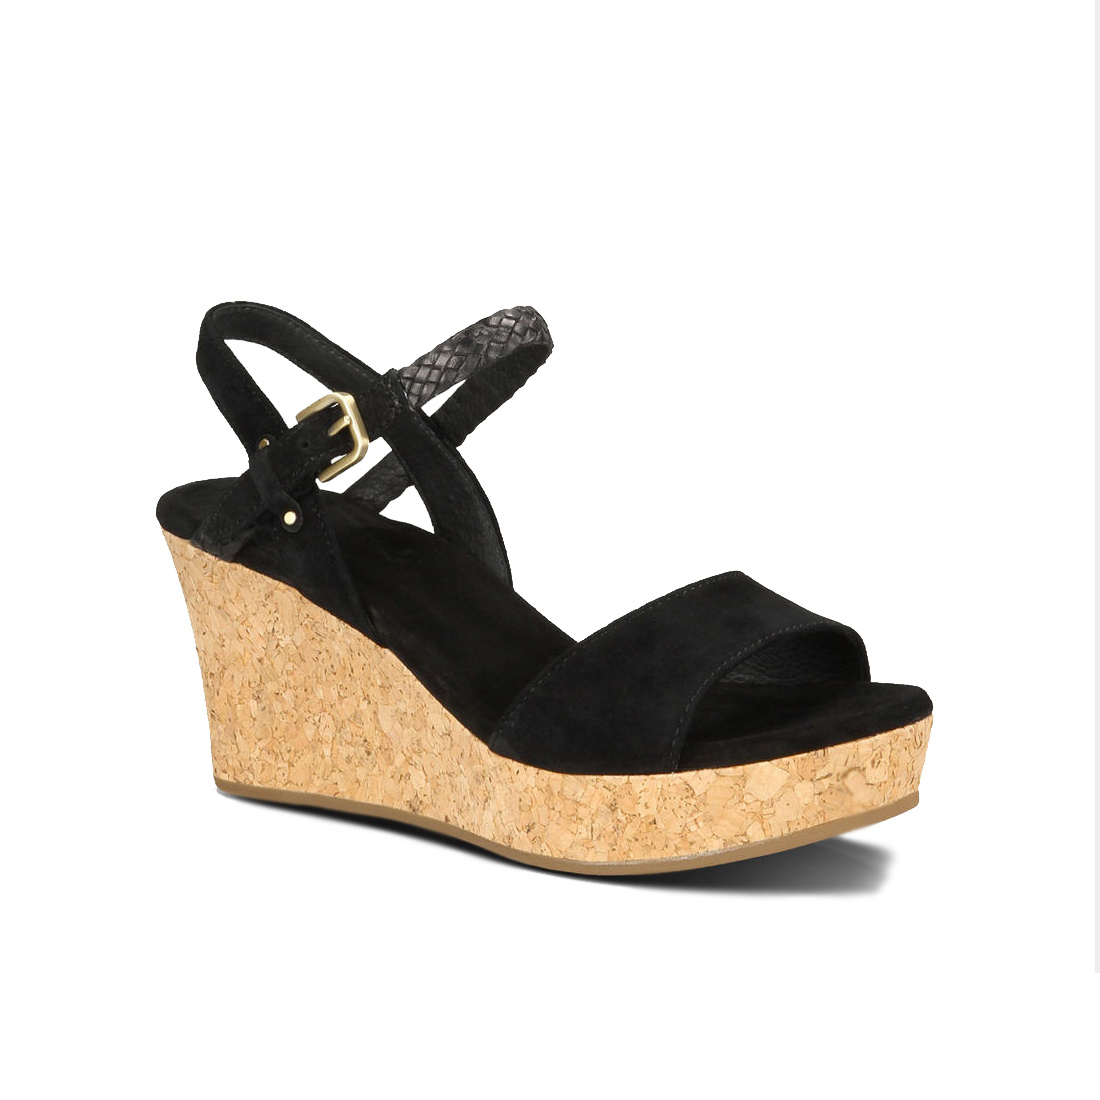 b53422d737be UGG Women s D Alessio Leather Braid Wedge Sandal Black Suede - Shop now    Shoolu